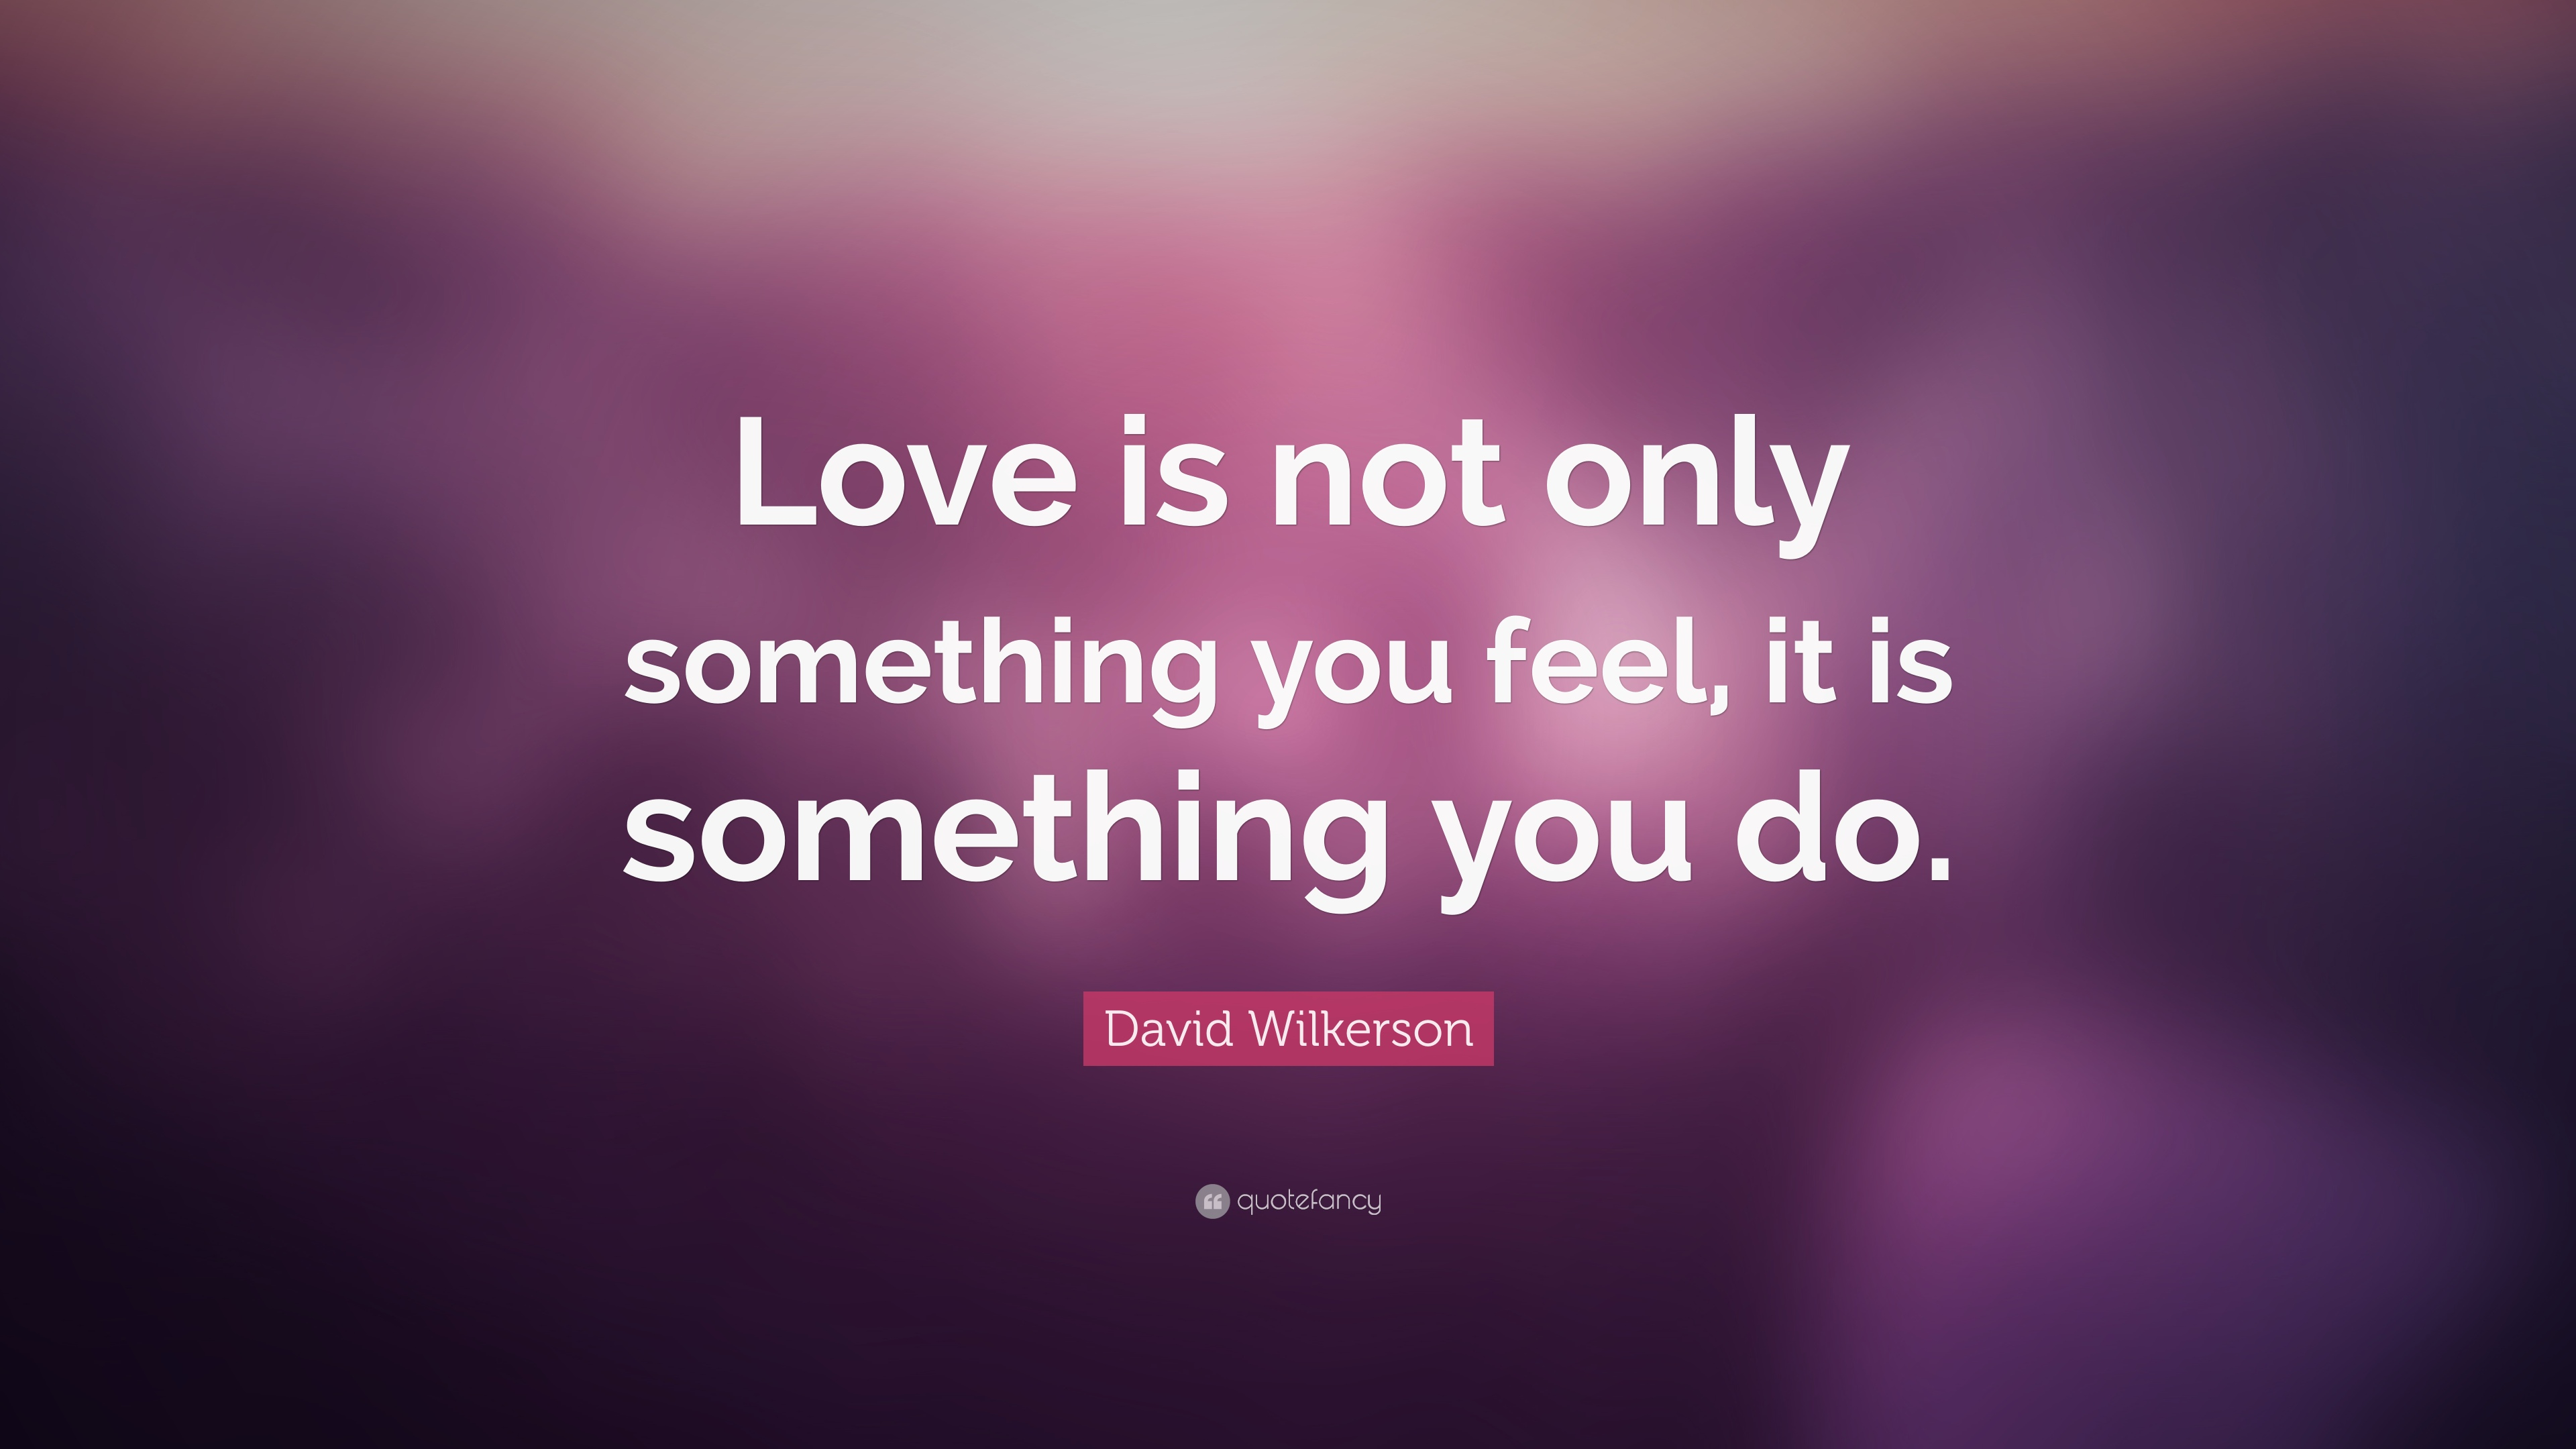 Cool Wallpaper Love Feel - 1135213-David-Wilkerson-Quote-Love-is-not-only-something-you-feel-it-is  HD_879468.jpg